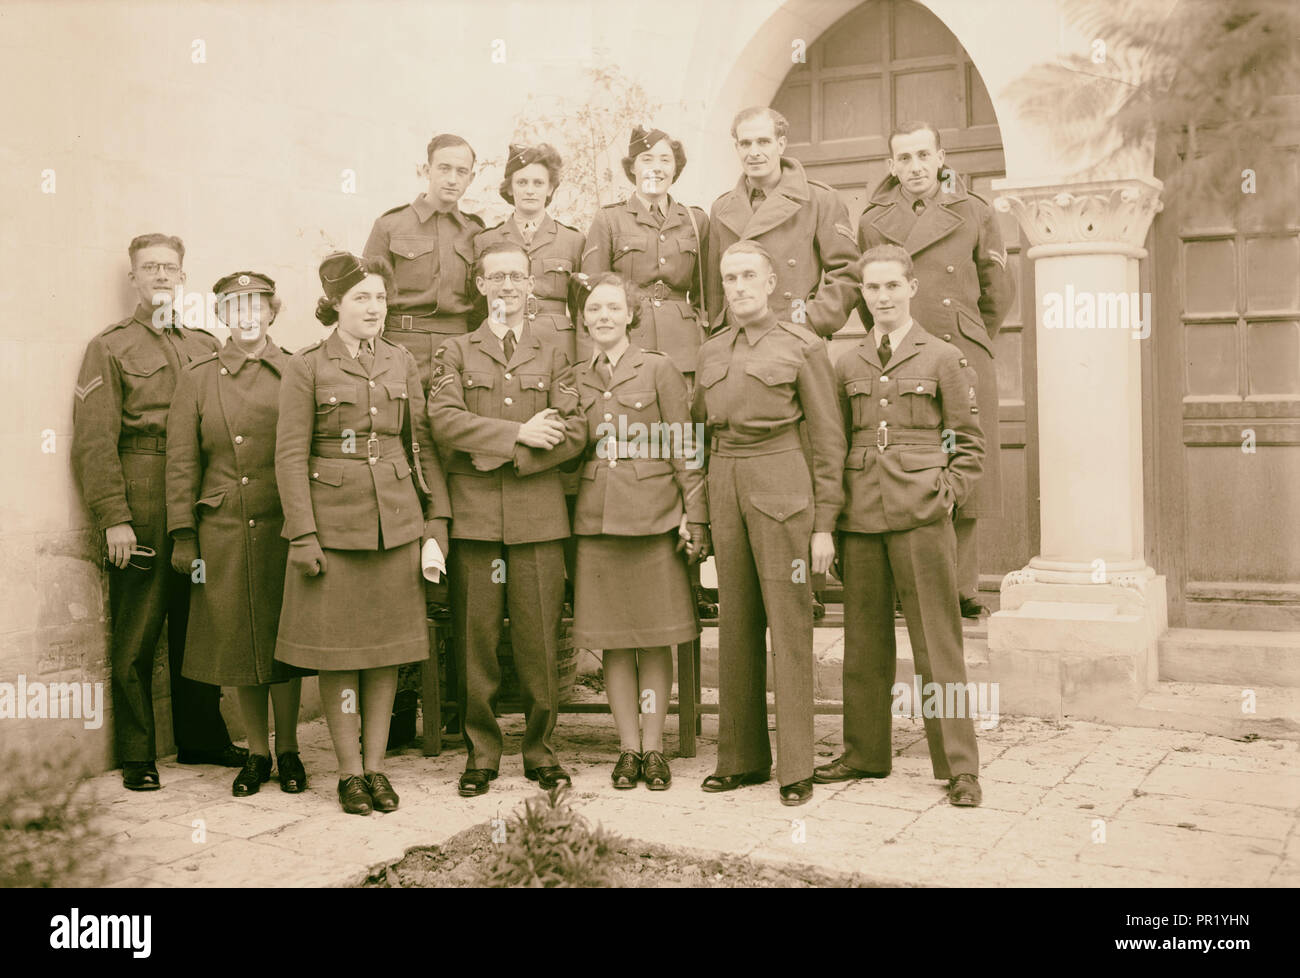 Large group of bride, groom & friends. 1940, Middle East, Israel and/or Palestine - Stock Image